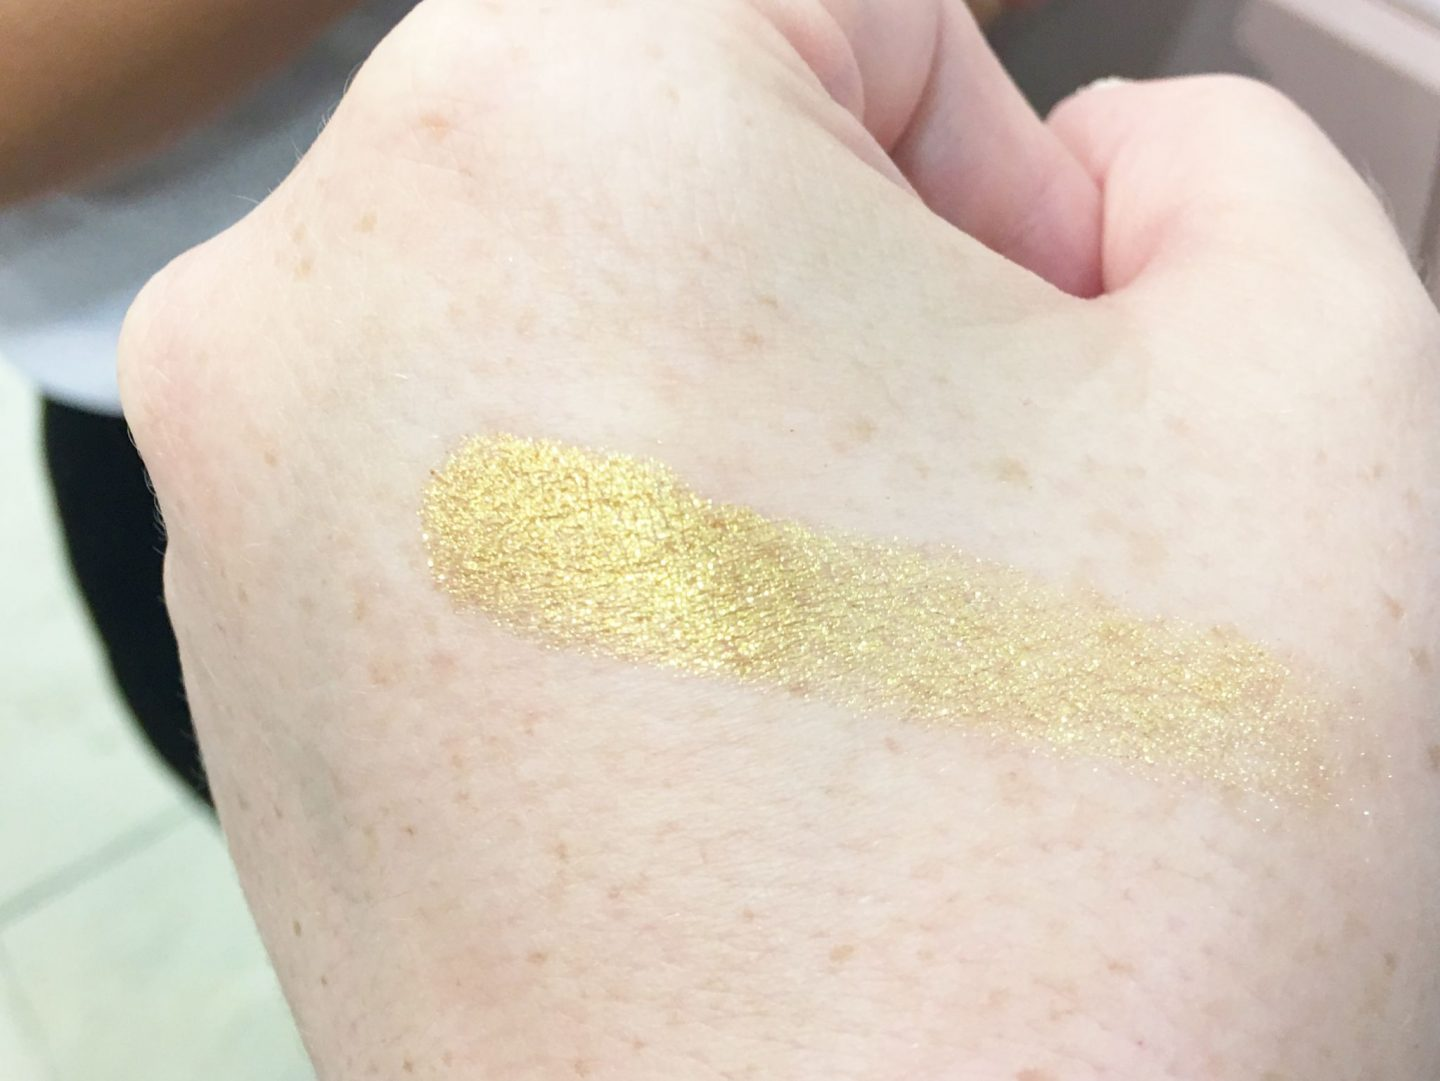 fenty beauty Killawatt Freestyle Highlighter in trophy wife swatch